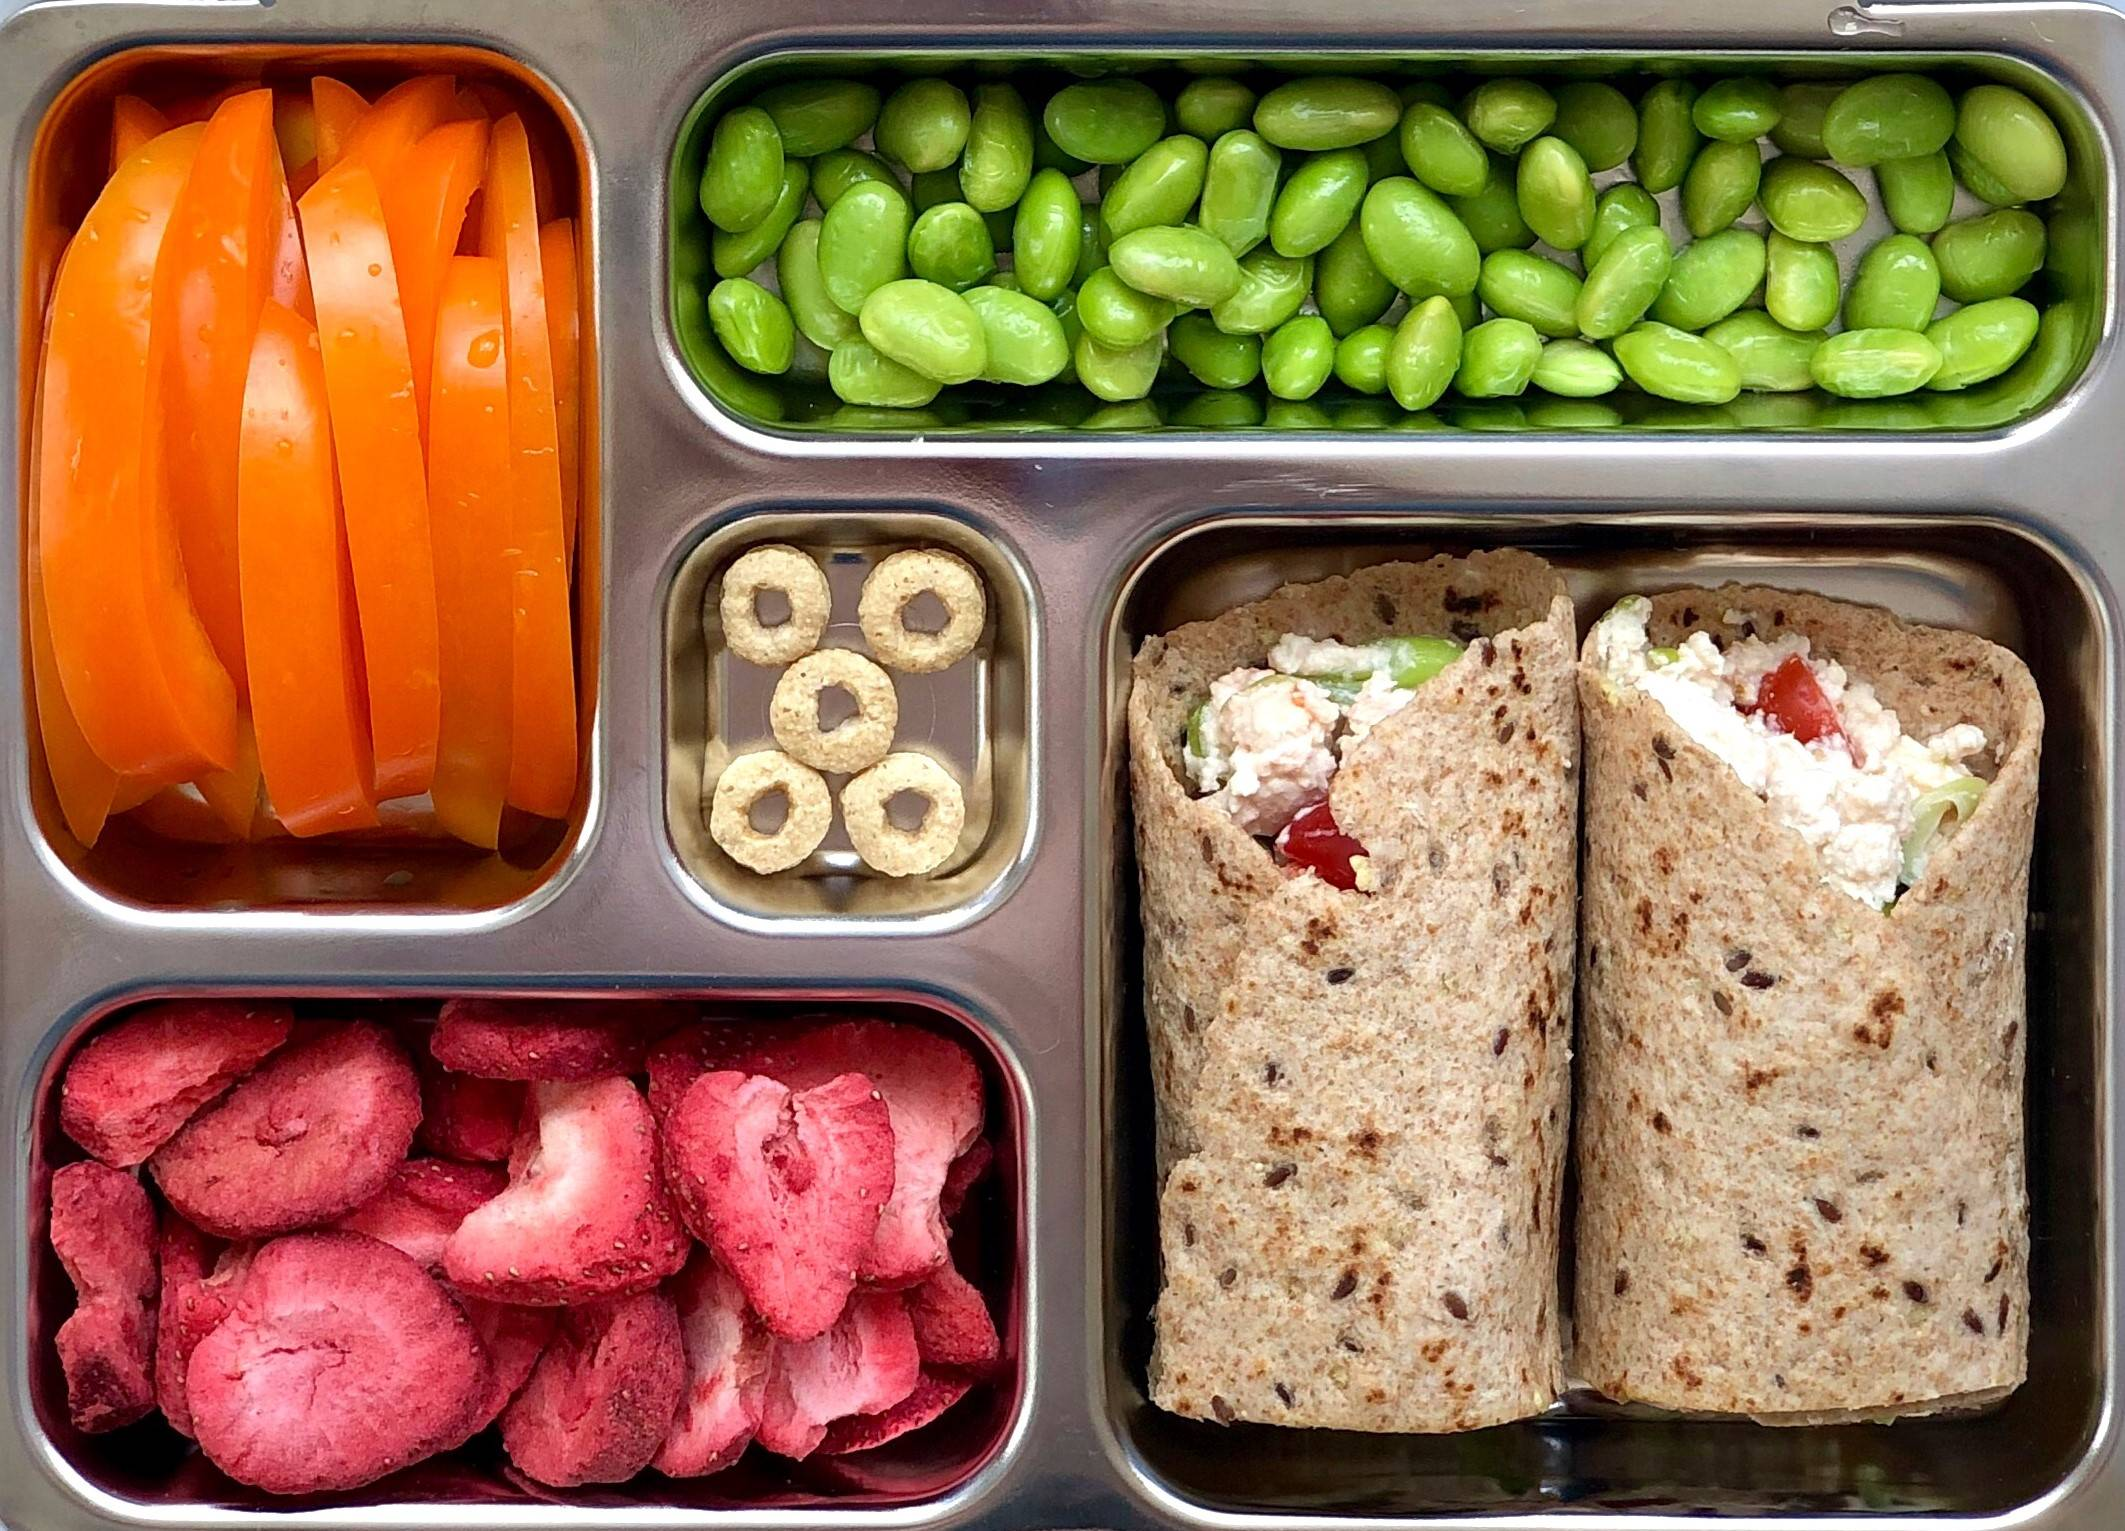 Kids lunch box filled with stuffed tuna wrap, shelled edamame, orange bell pepper sticks, freeze-dried strawberries, whole grain O's.